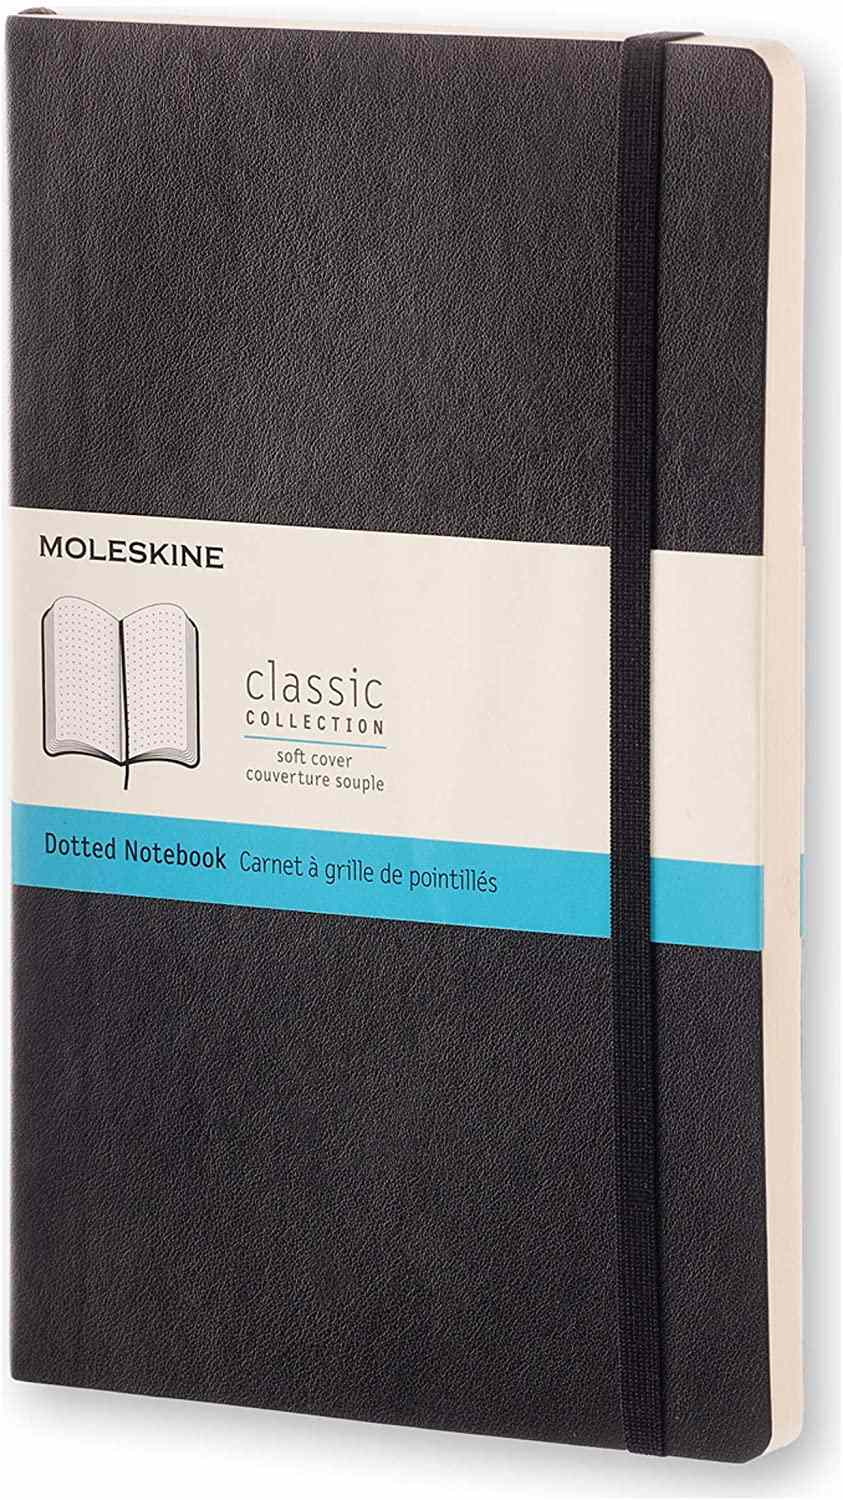 Moleskine Classic Soft Cover Dotted Notebook